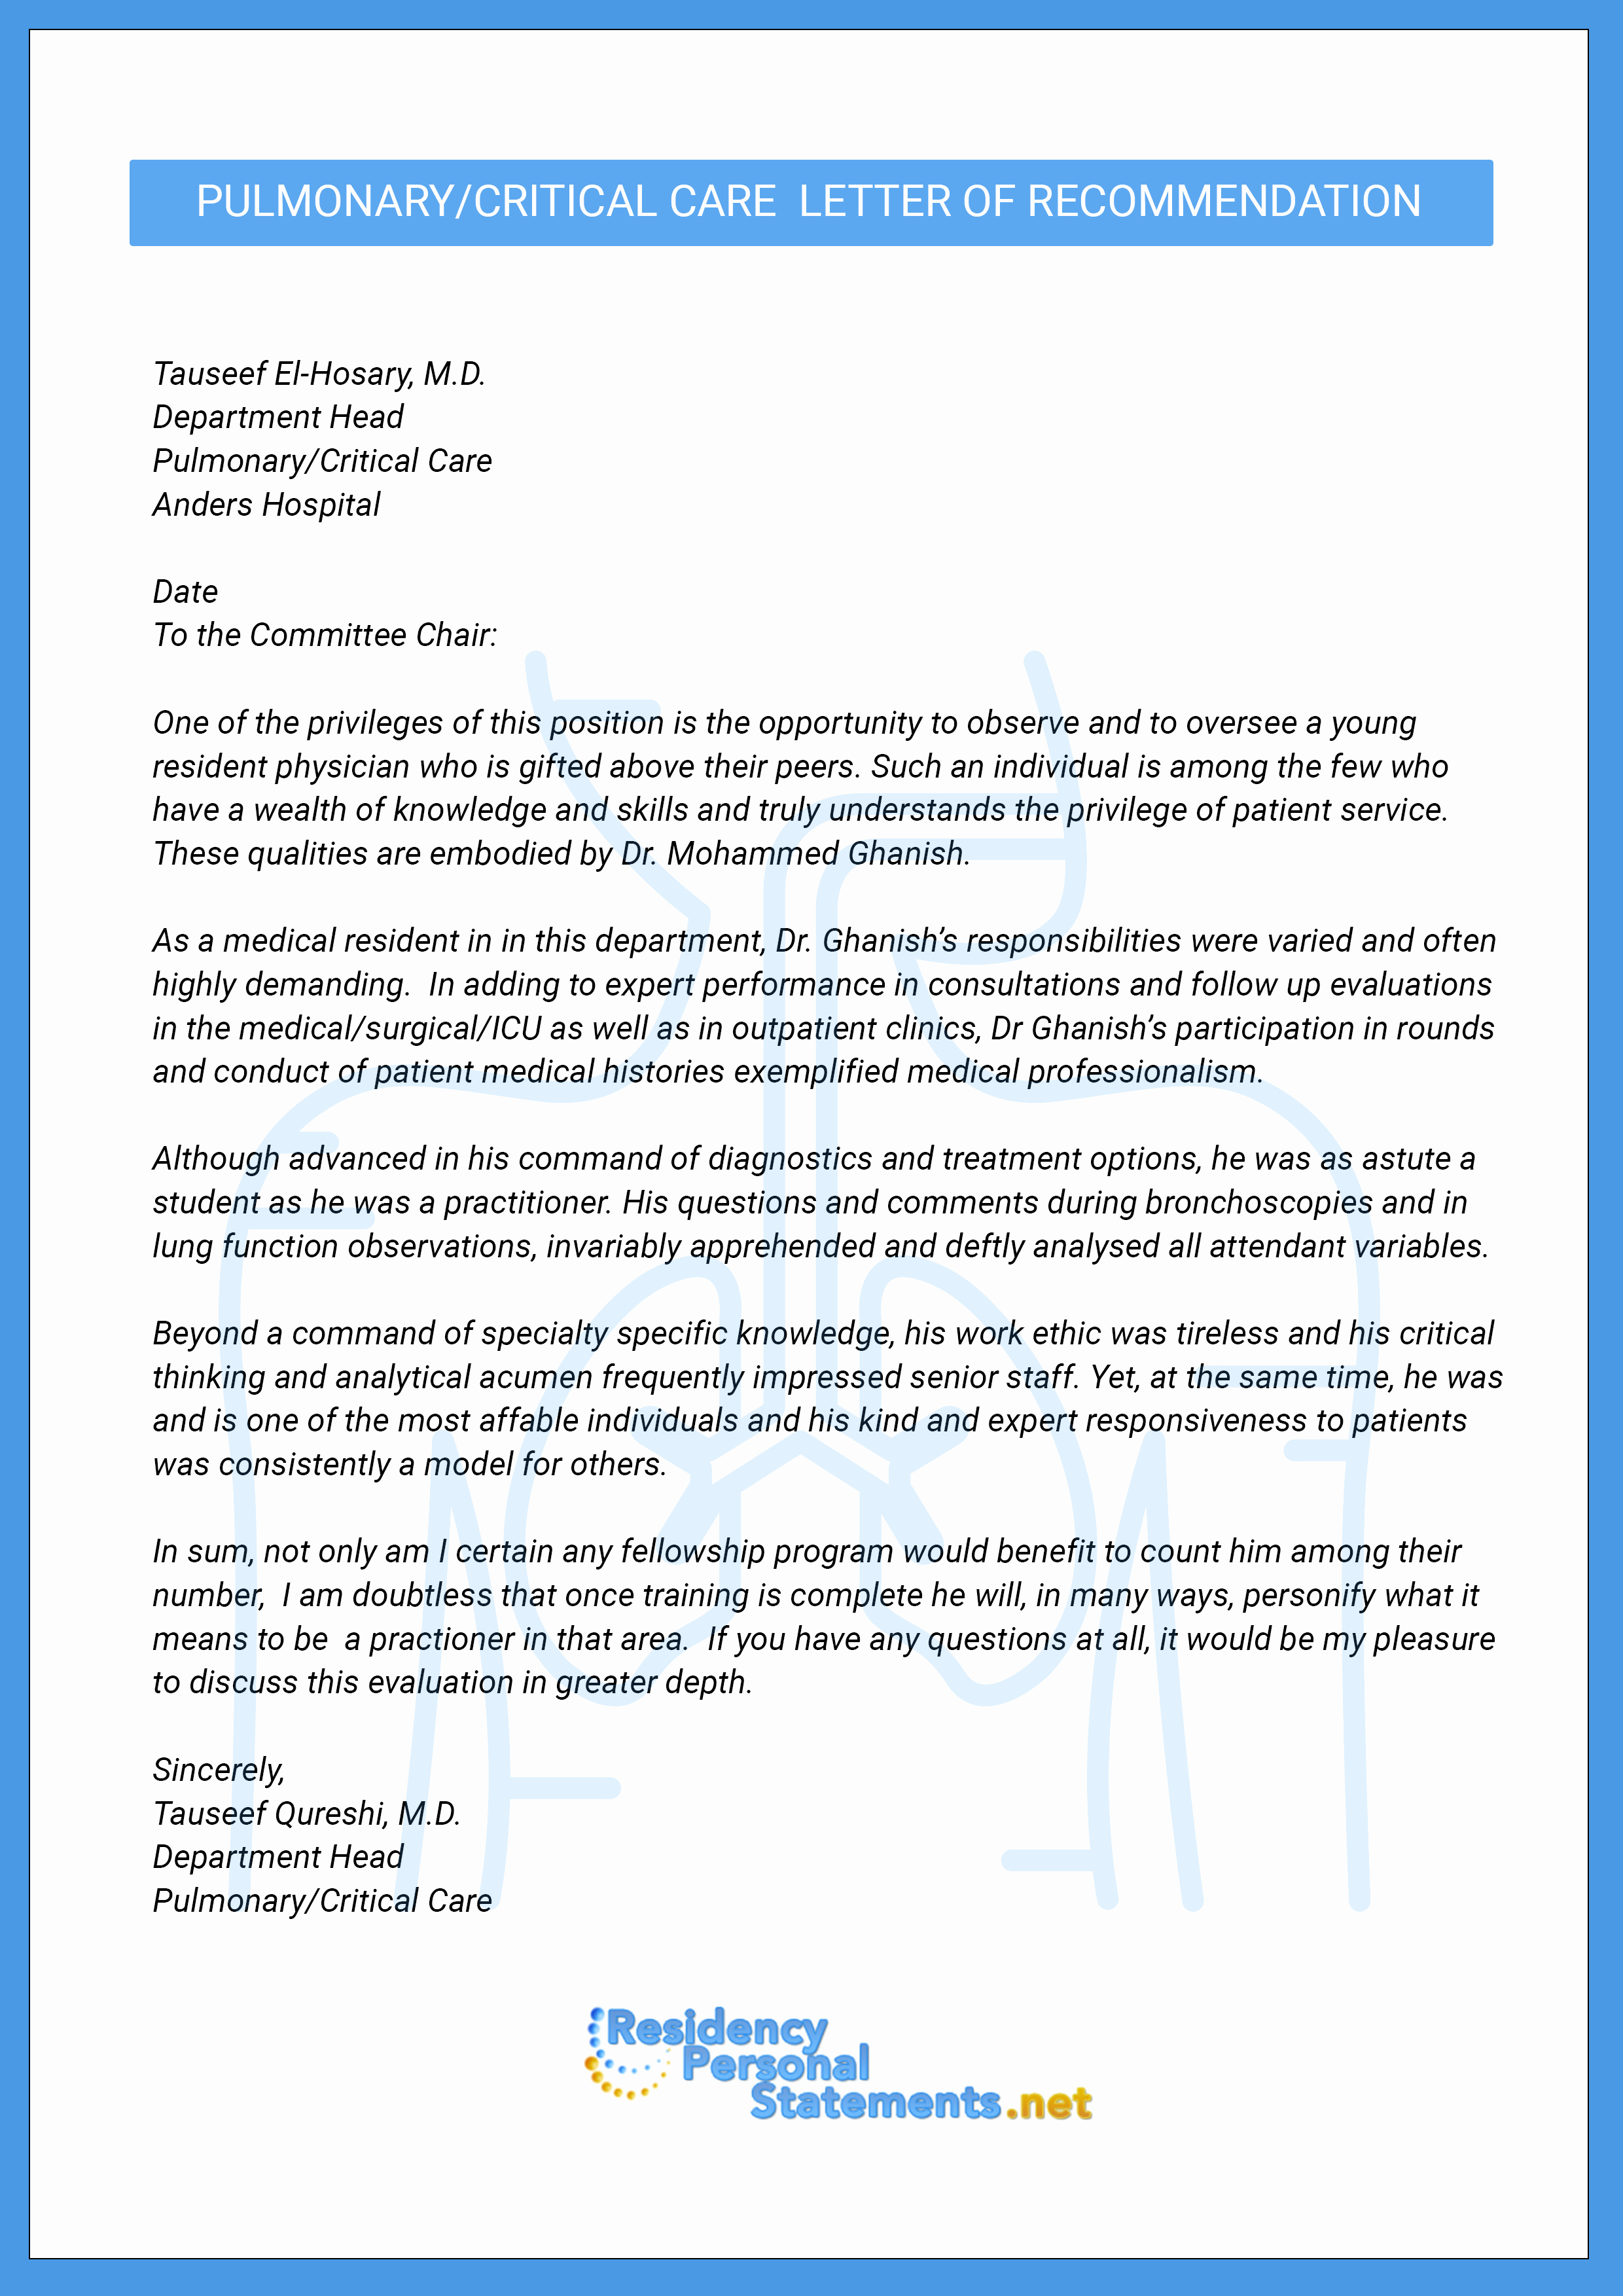 Physician Letter Of Recommendation Awesome Letter Of Re Mendation for Medical Fellowship Example